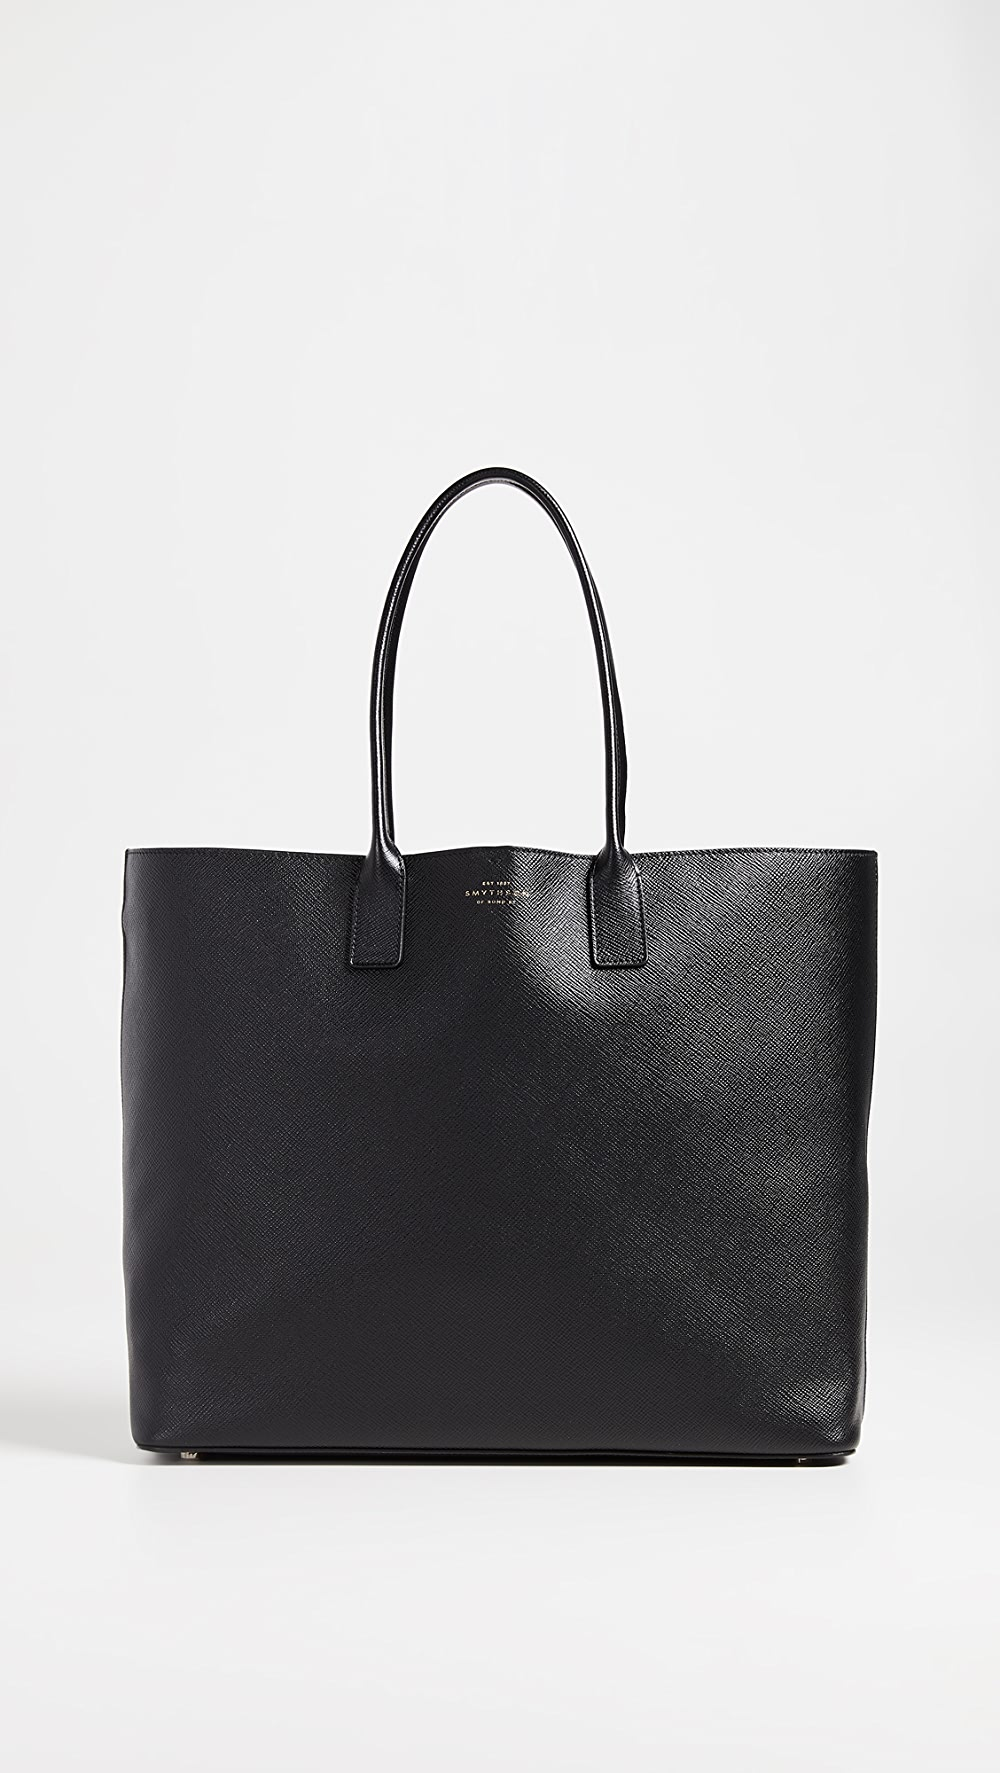 Persevering Smythson - Panama Tote Famous For Selected Materials, Novel Designs, Delightful Colors And Exquisite Workmanship